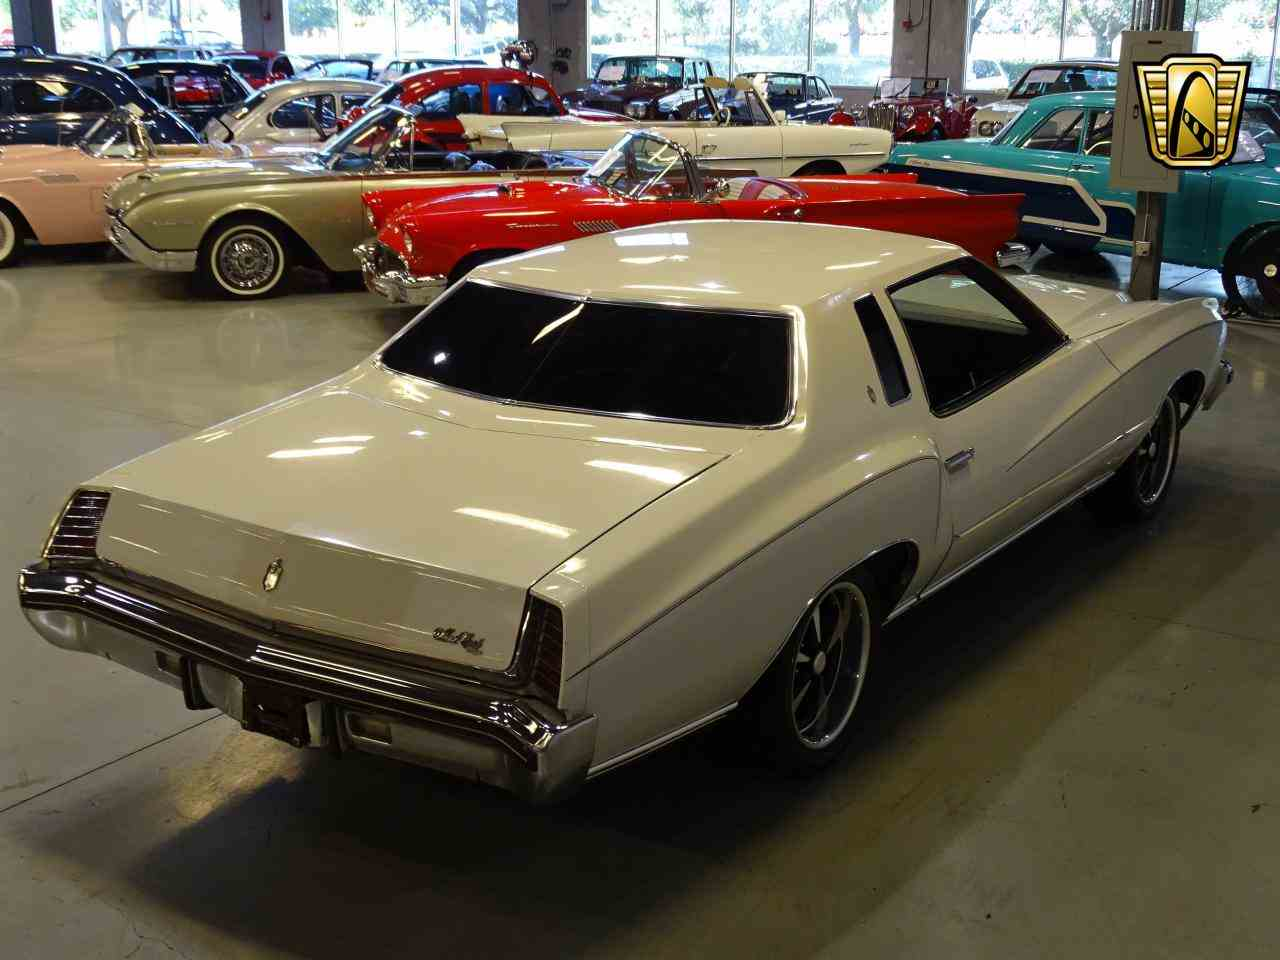 Large Picture of 1973 Chevrolet Monte Carlo located in Florida - $12,595.00 Offered by Gateway Classic Cars - Orlando - ME5G